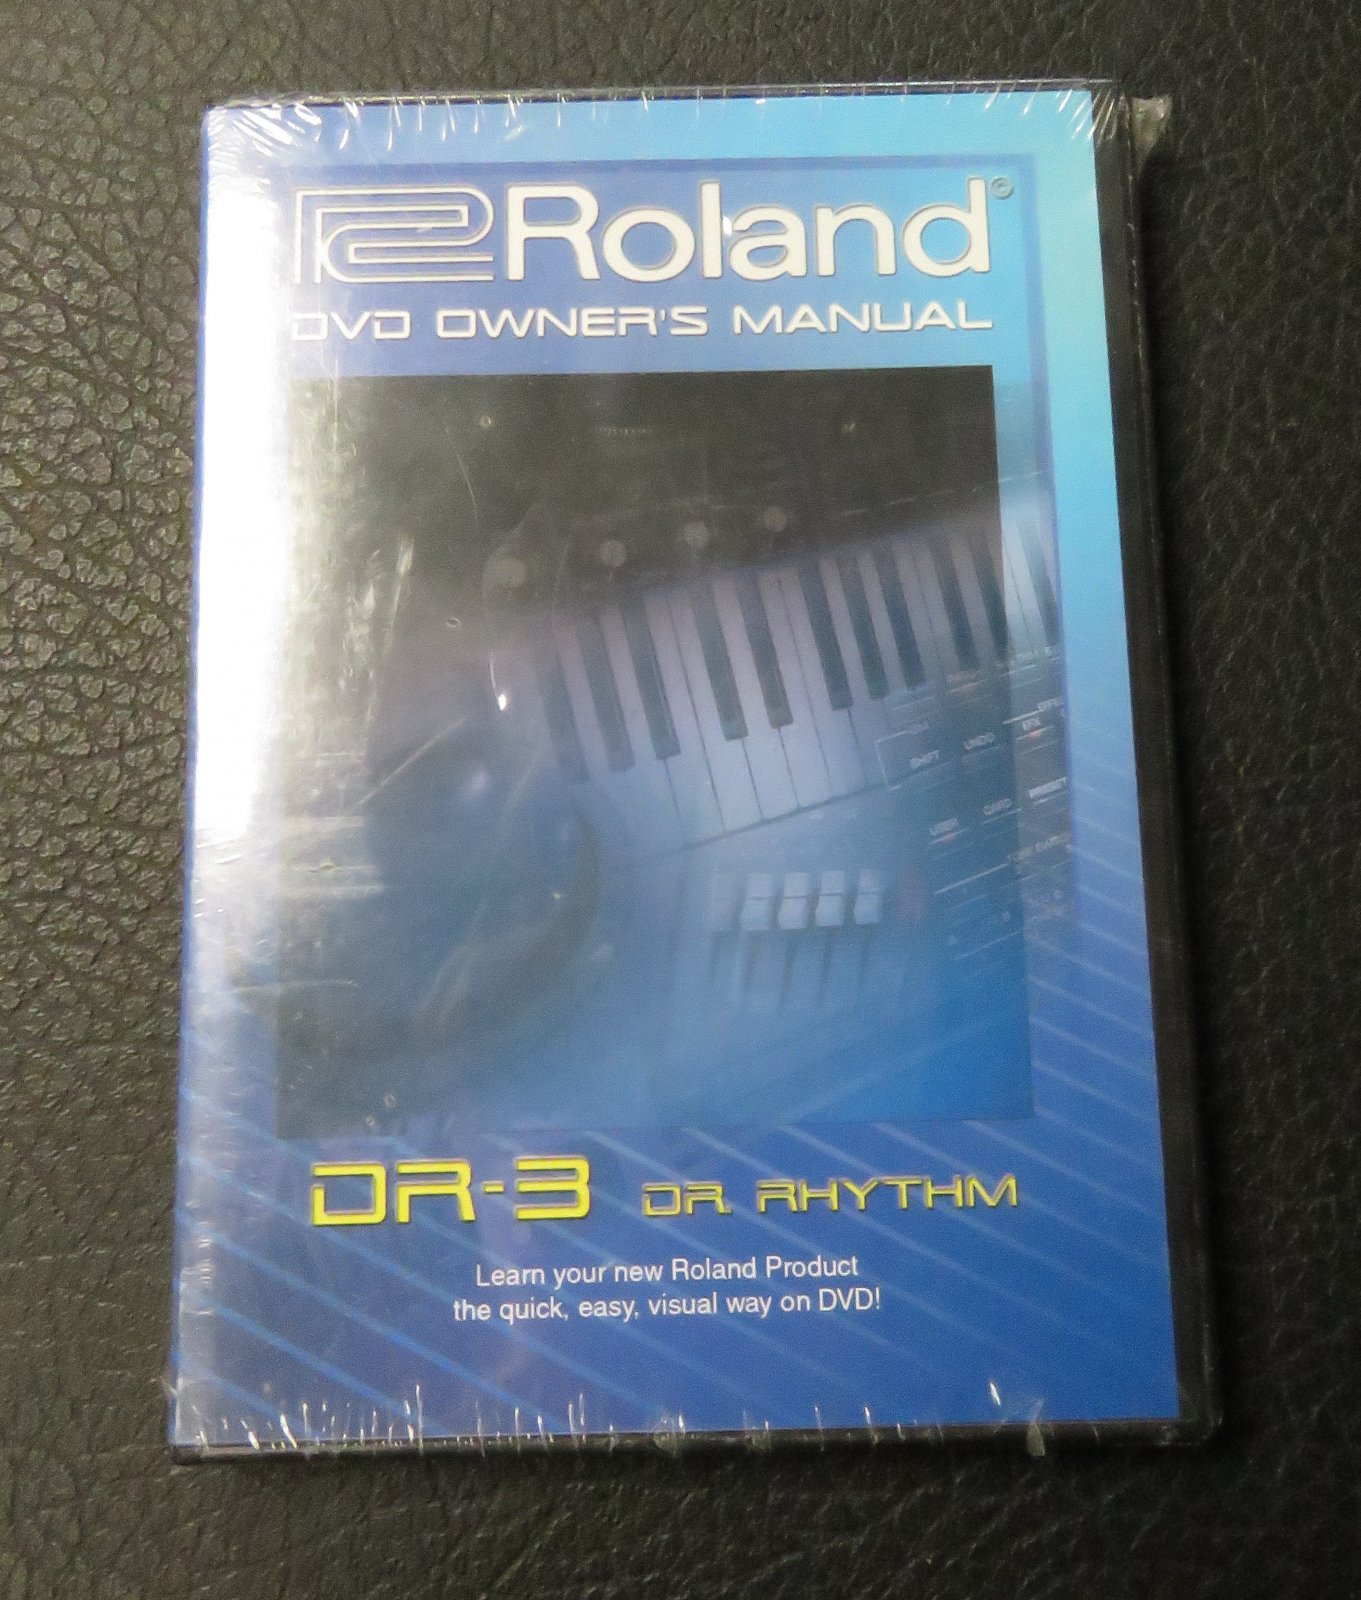 New Old Stock Roland DR-3 DVD Owner's Manual